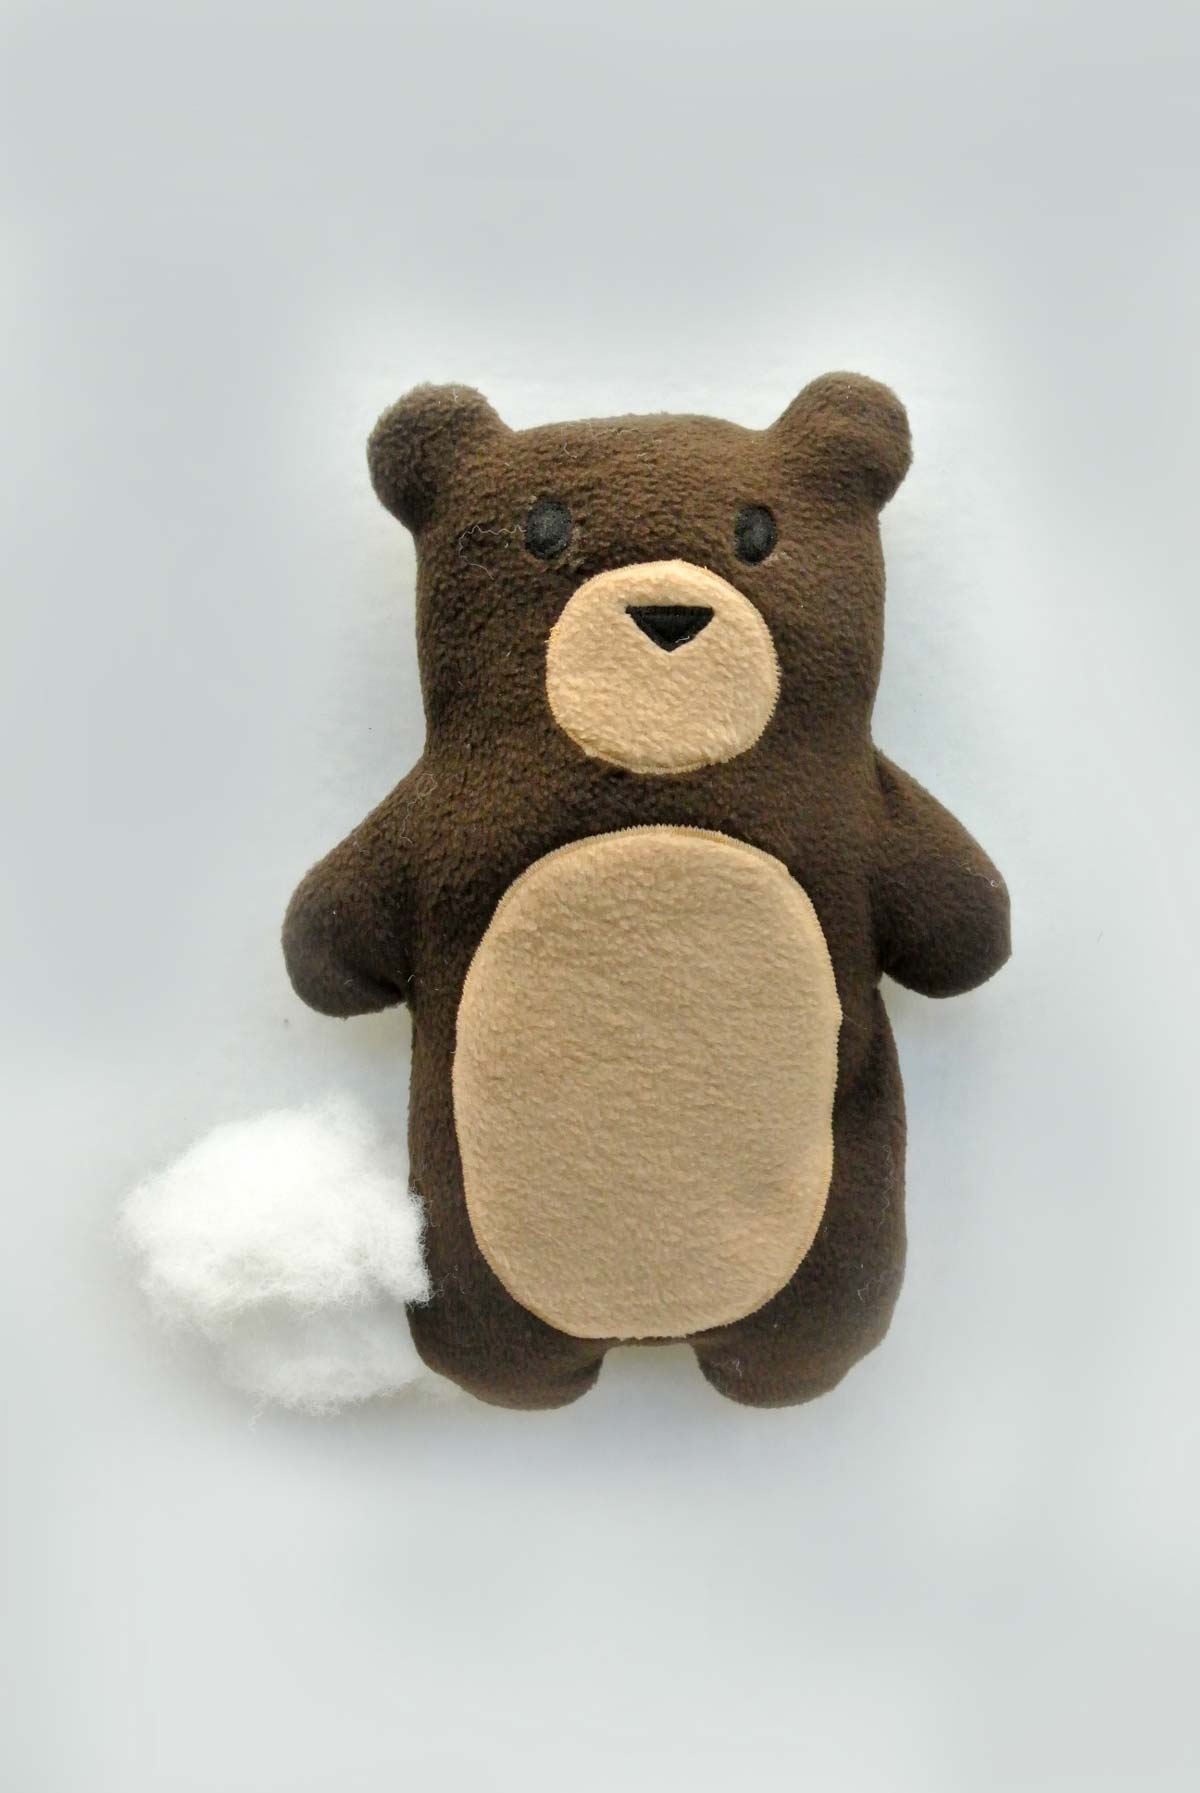 Shows Bear Plush being stuffed with Polyester fiberfill. How to Make Plushie Tutorial